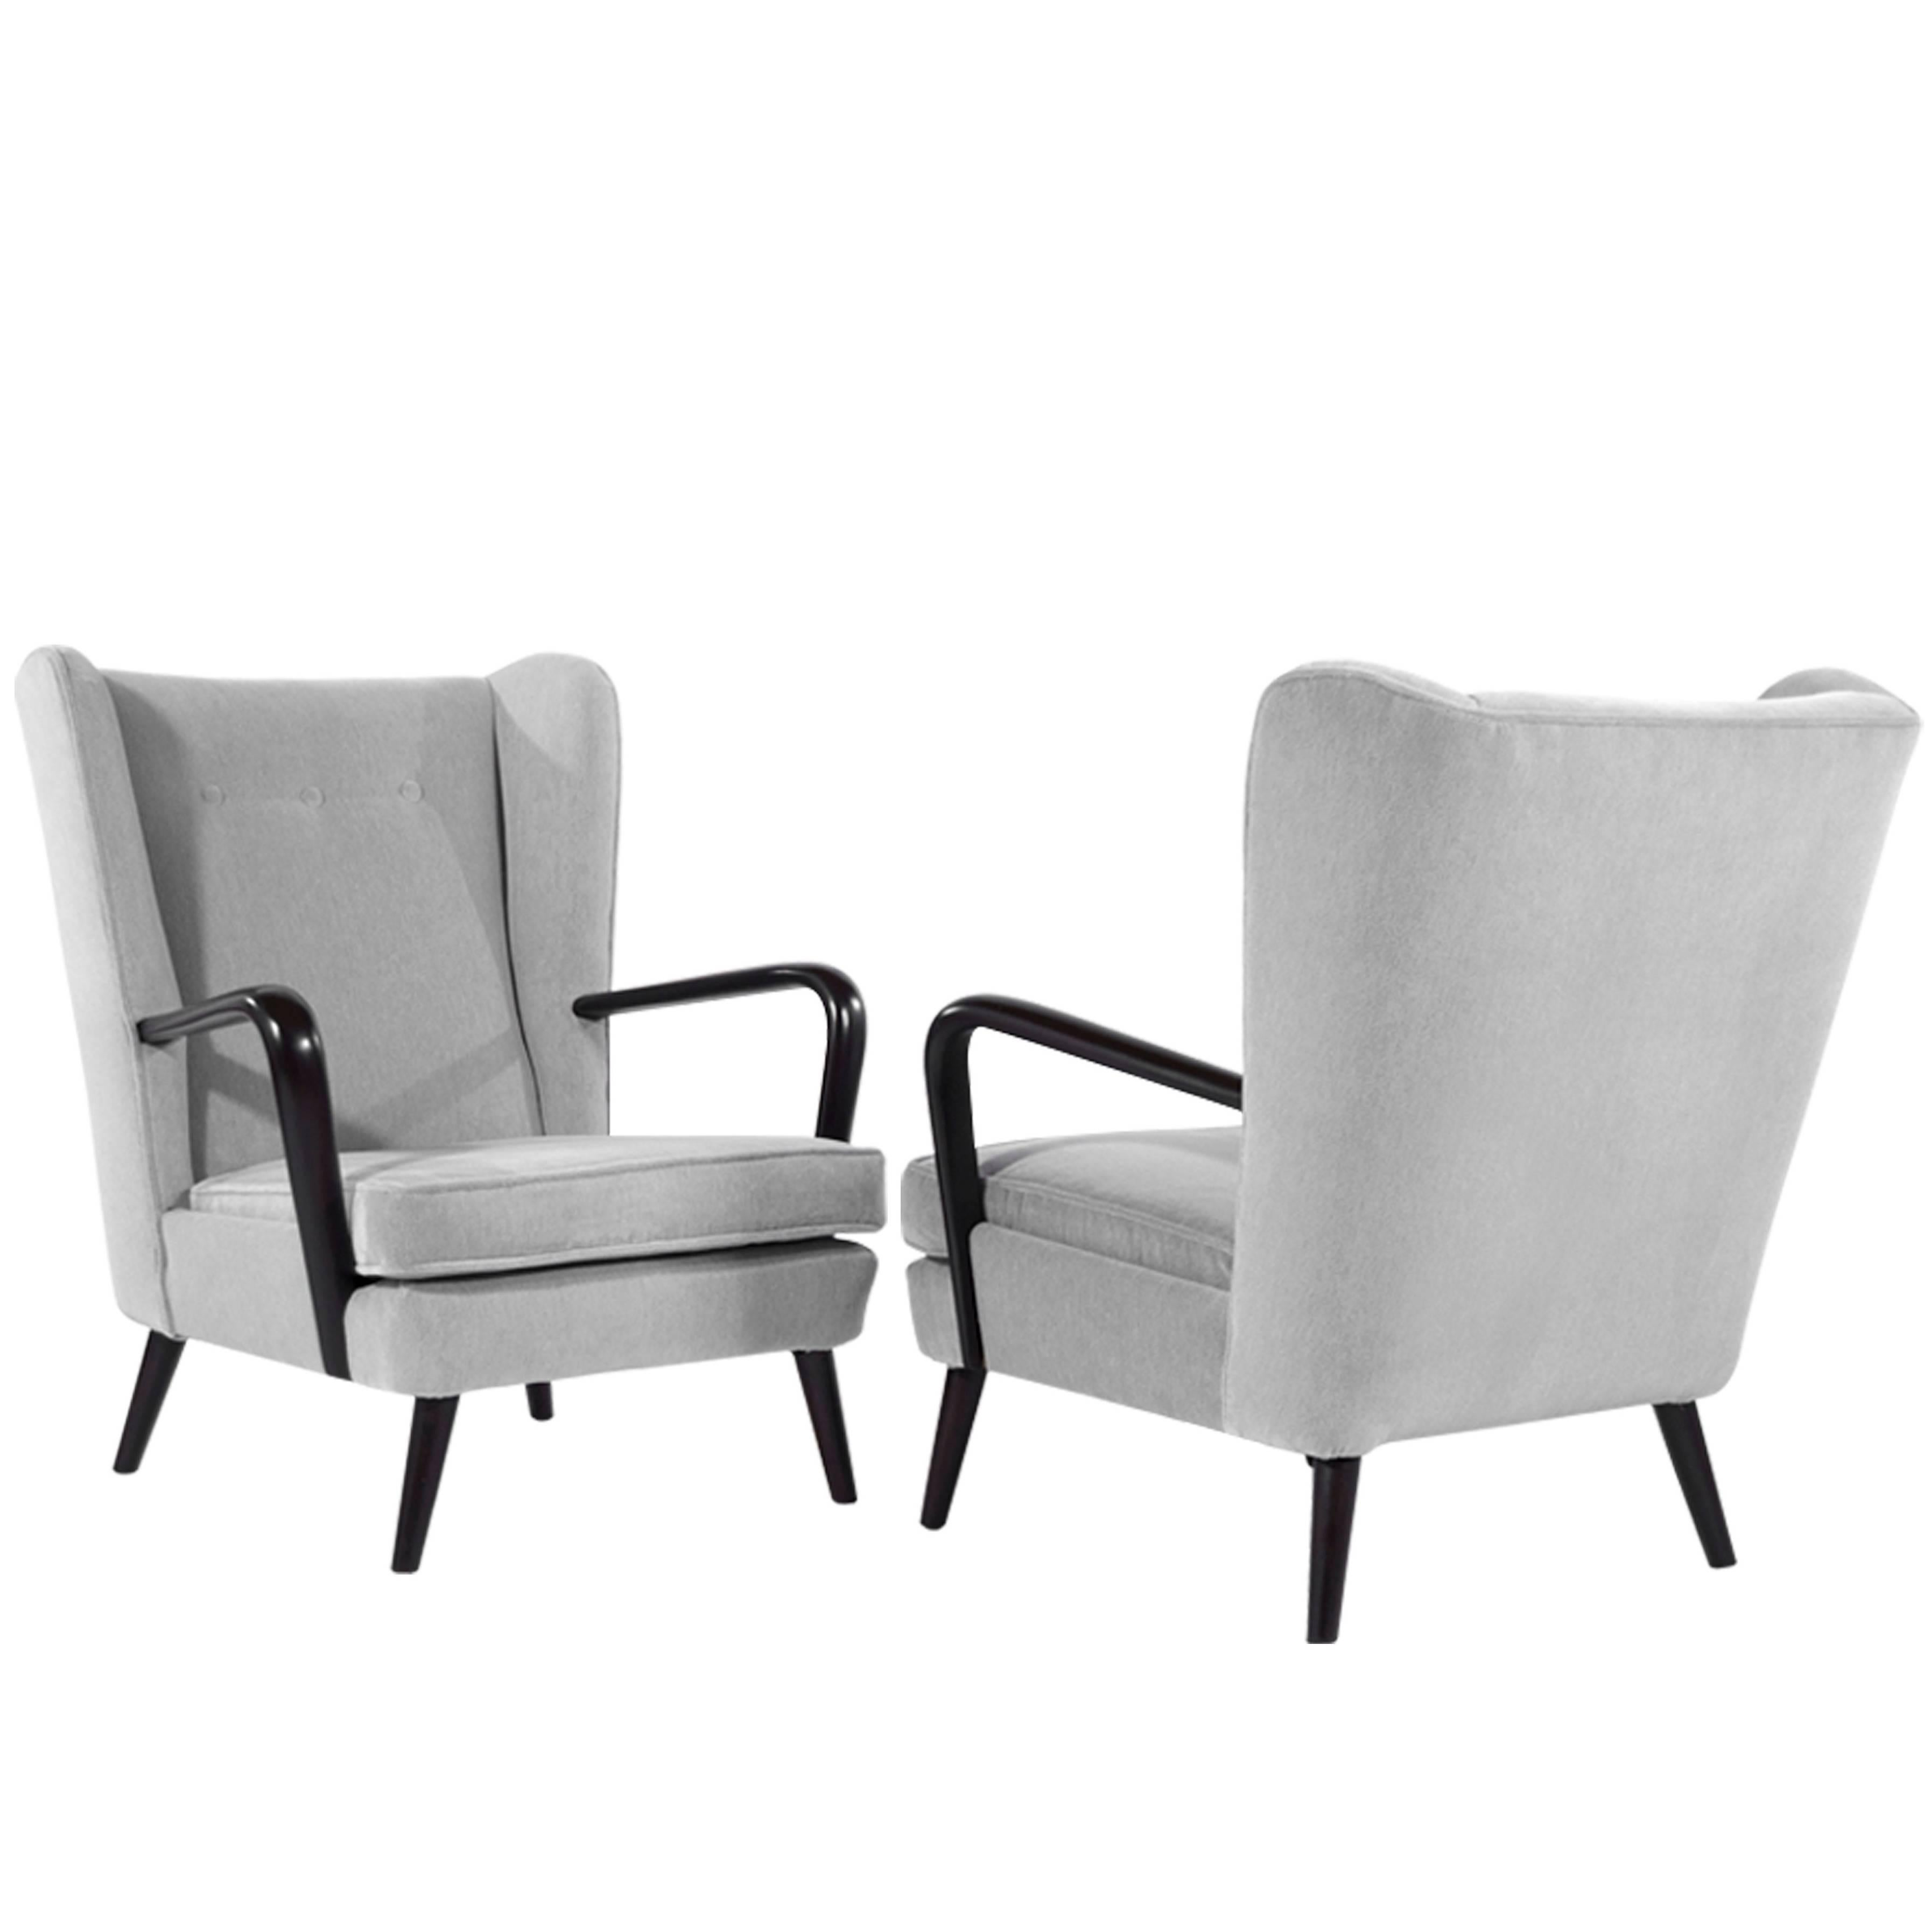 Ordinaire Pair Of Italian Wingback Chairs In The Style Of Gio Ponti For Sale